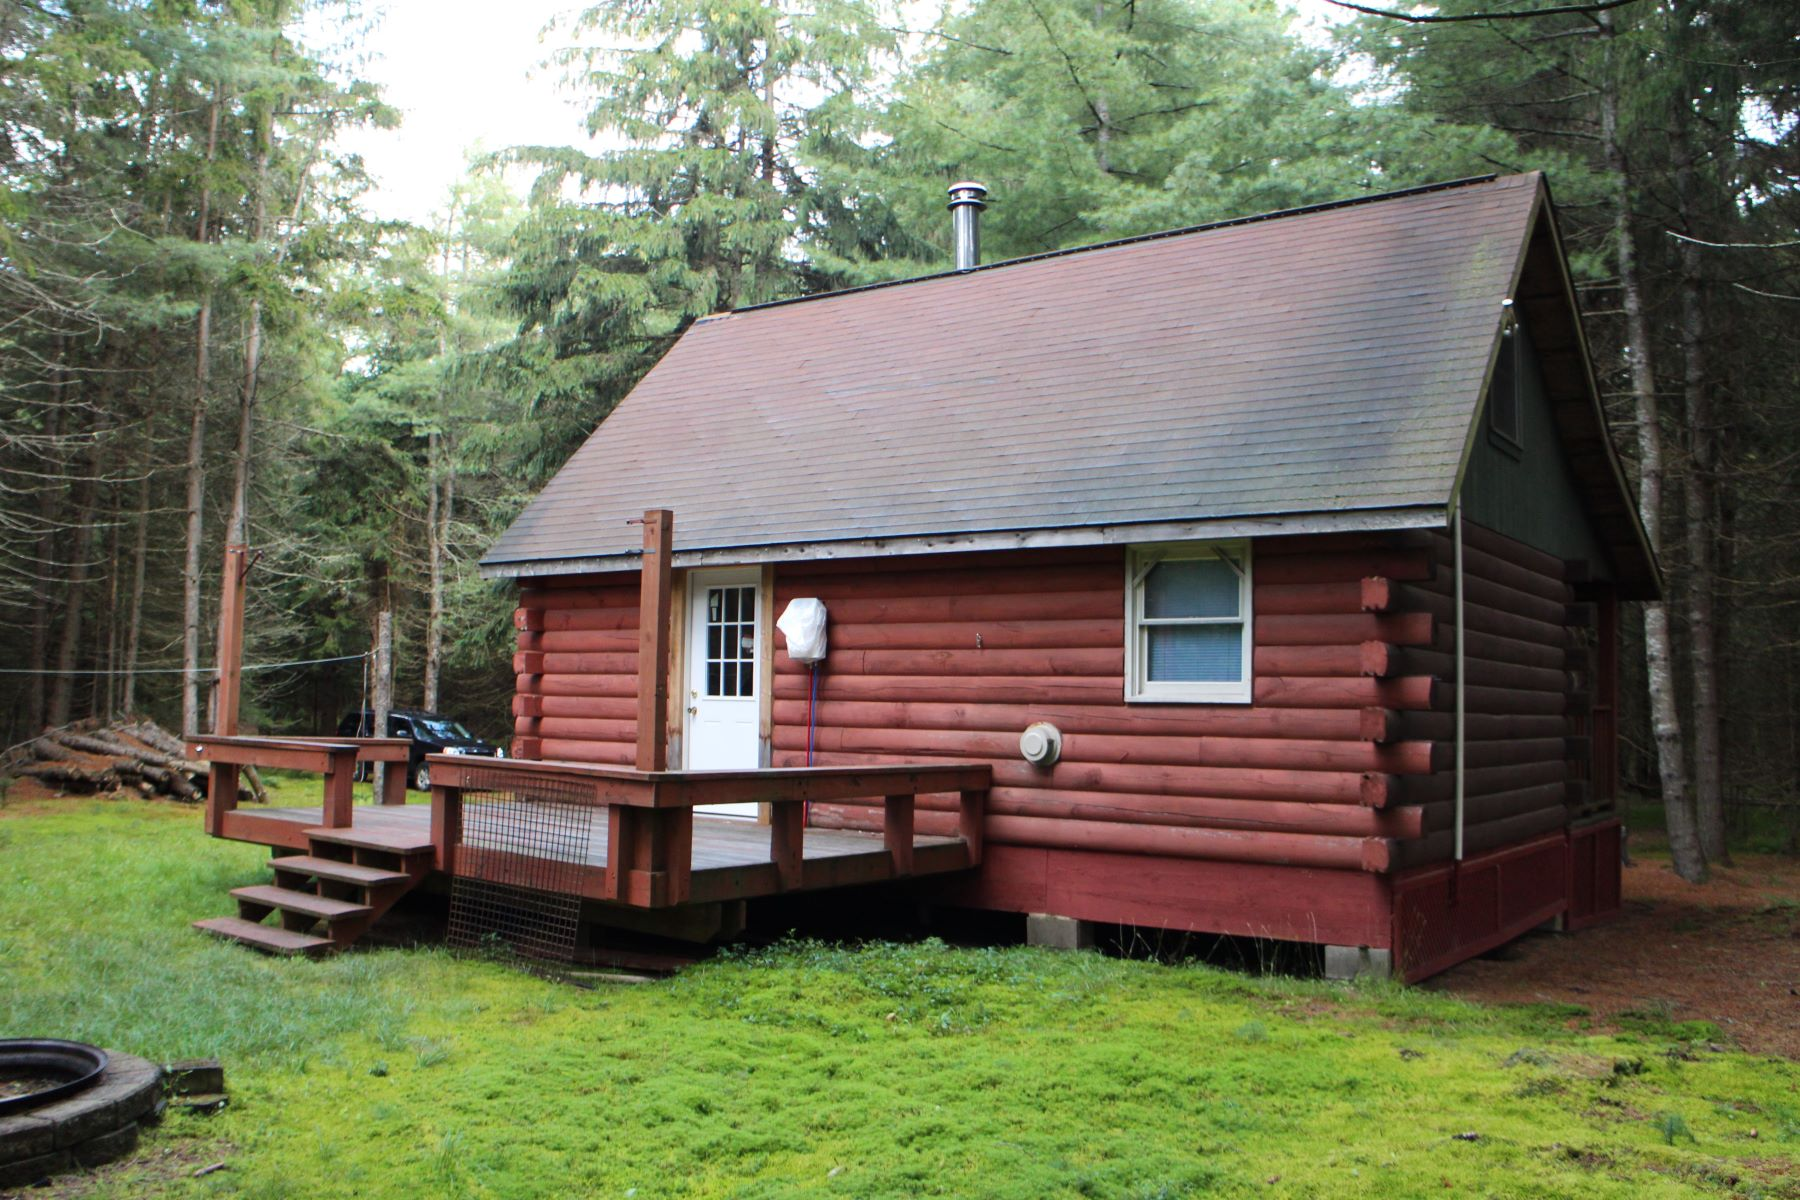 Additional photo for property listing at Log camp in Snowbird Lake area 12486 Meekerville Rd. North Forestport, Nueva York 13338 Estados Unidos